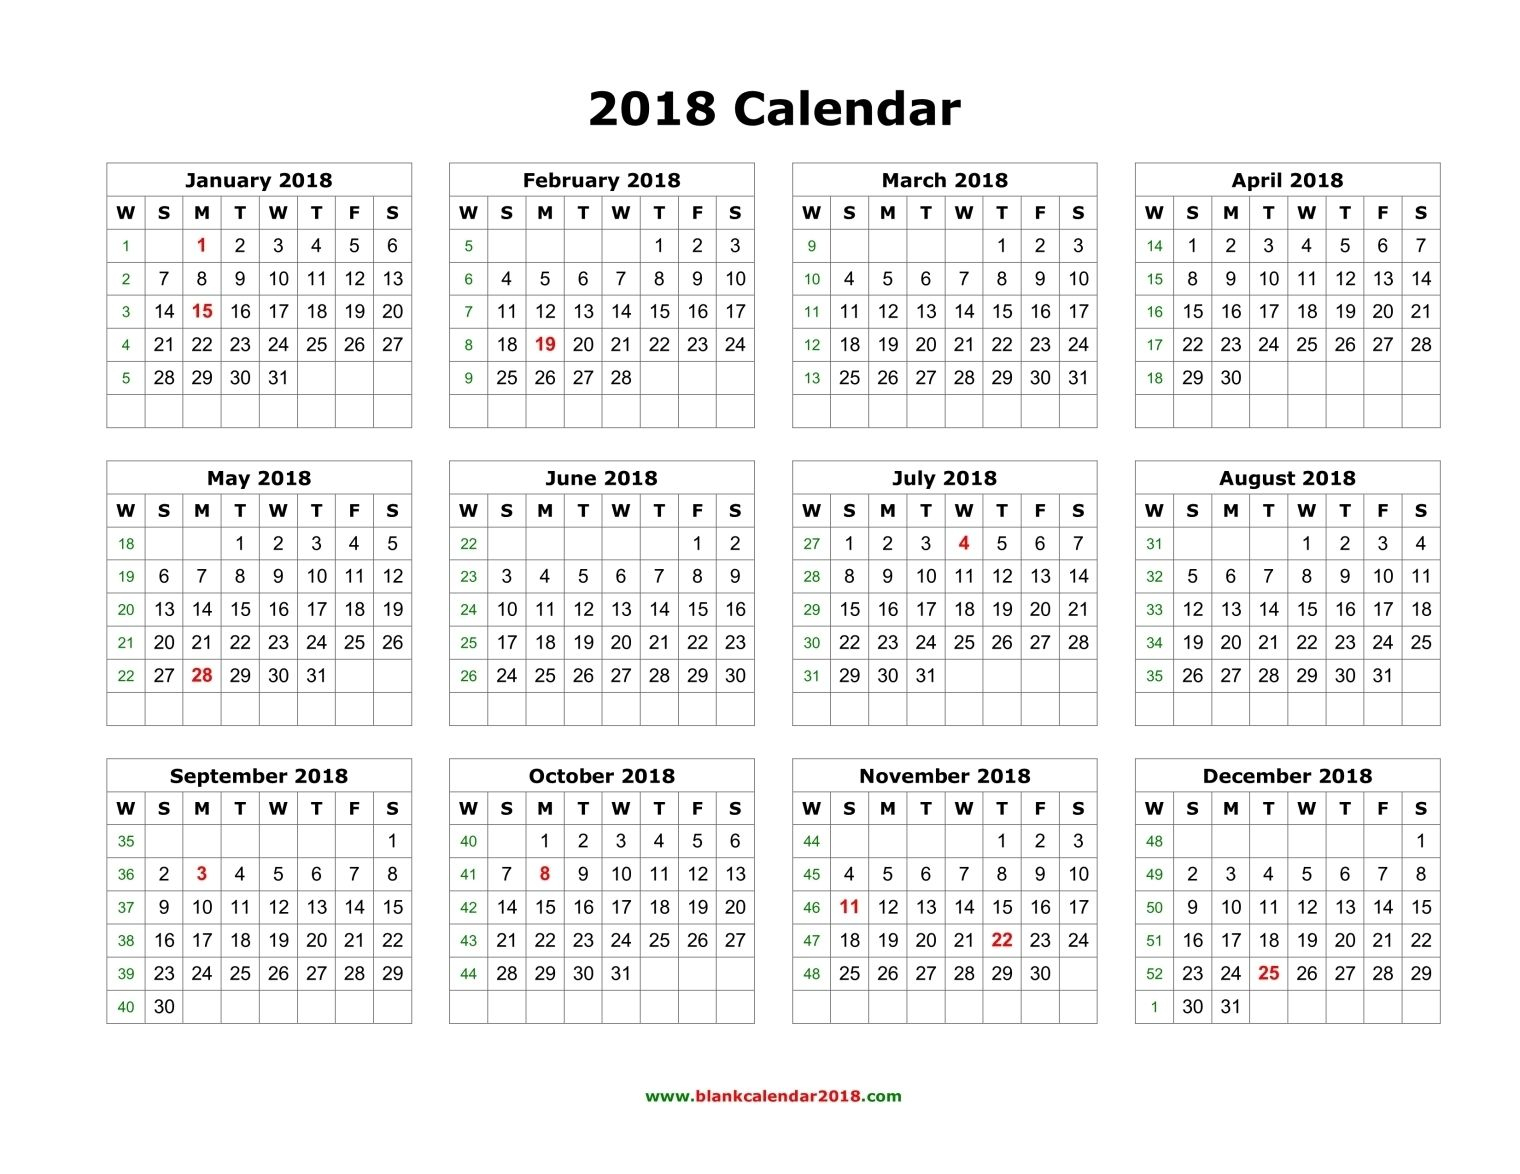 2018 Calendar Printable Yearly 2018 Calendar Blank Landscape